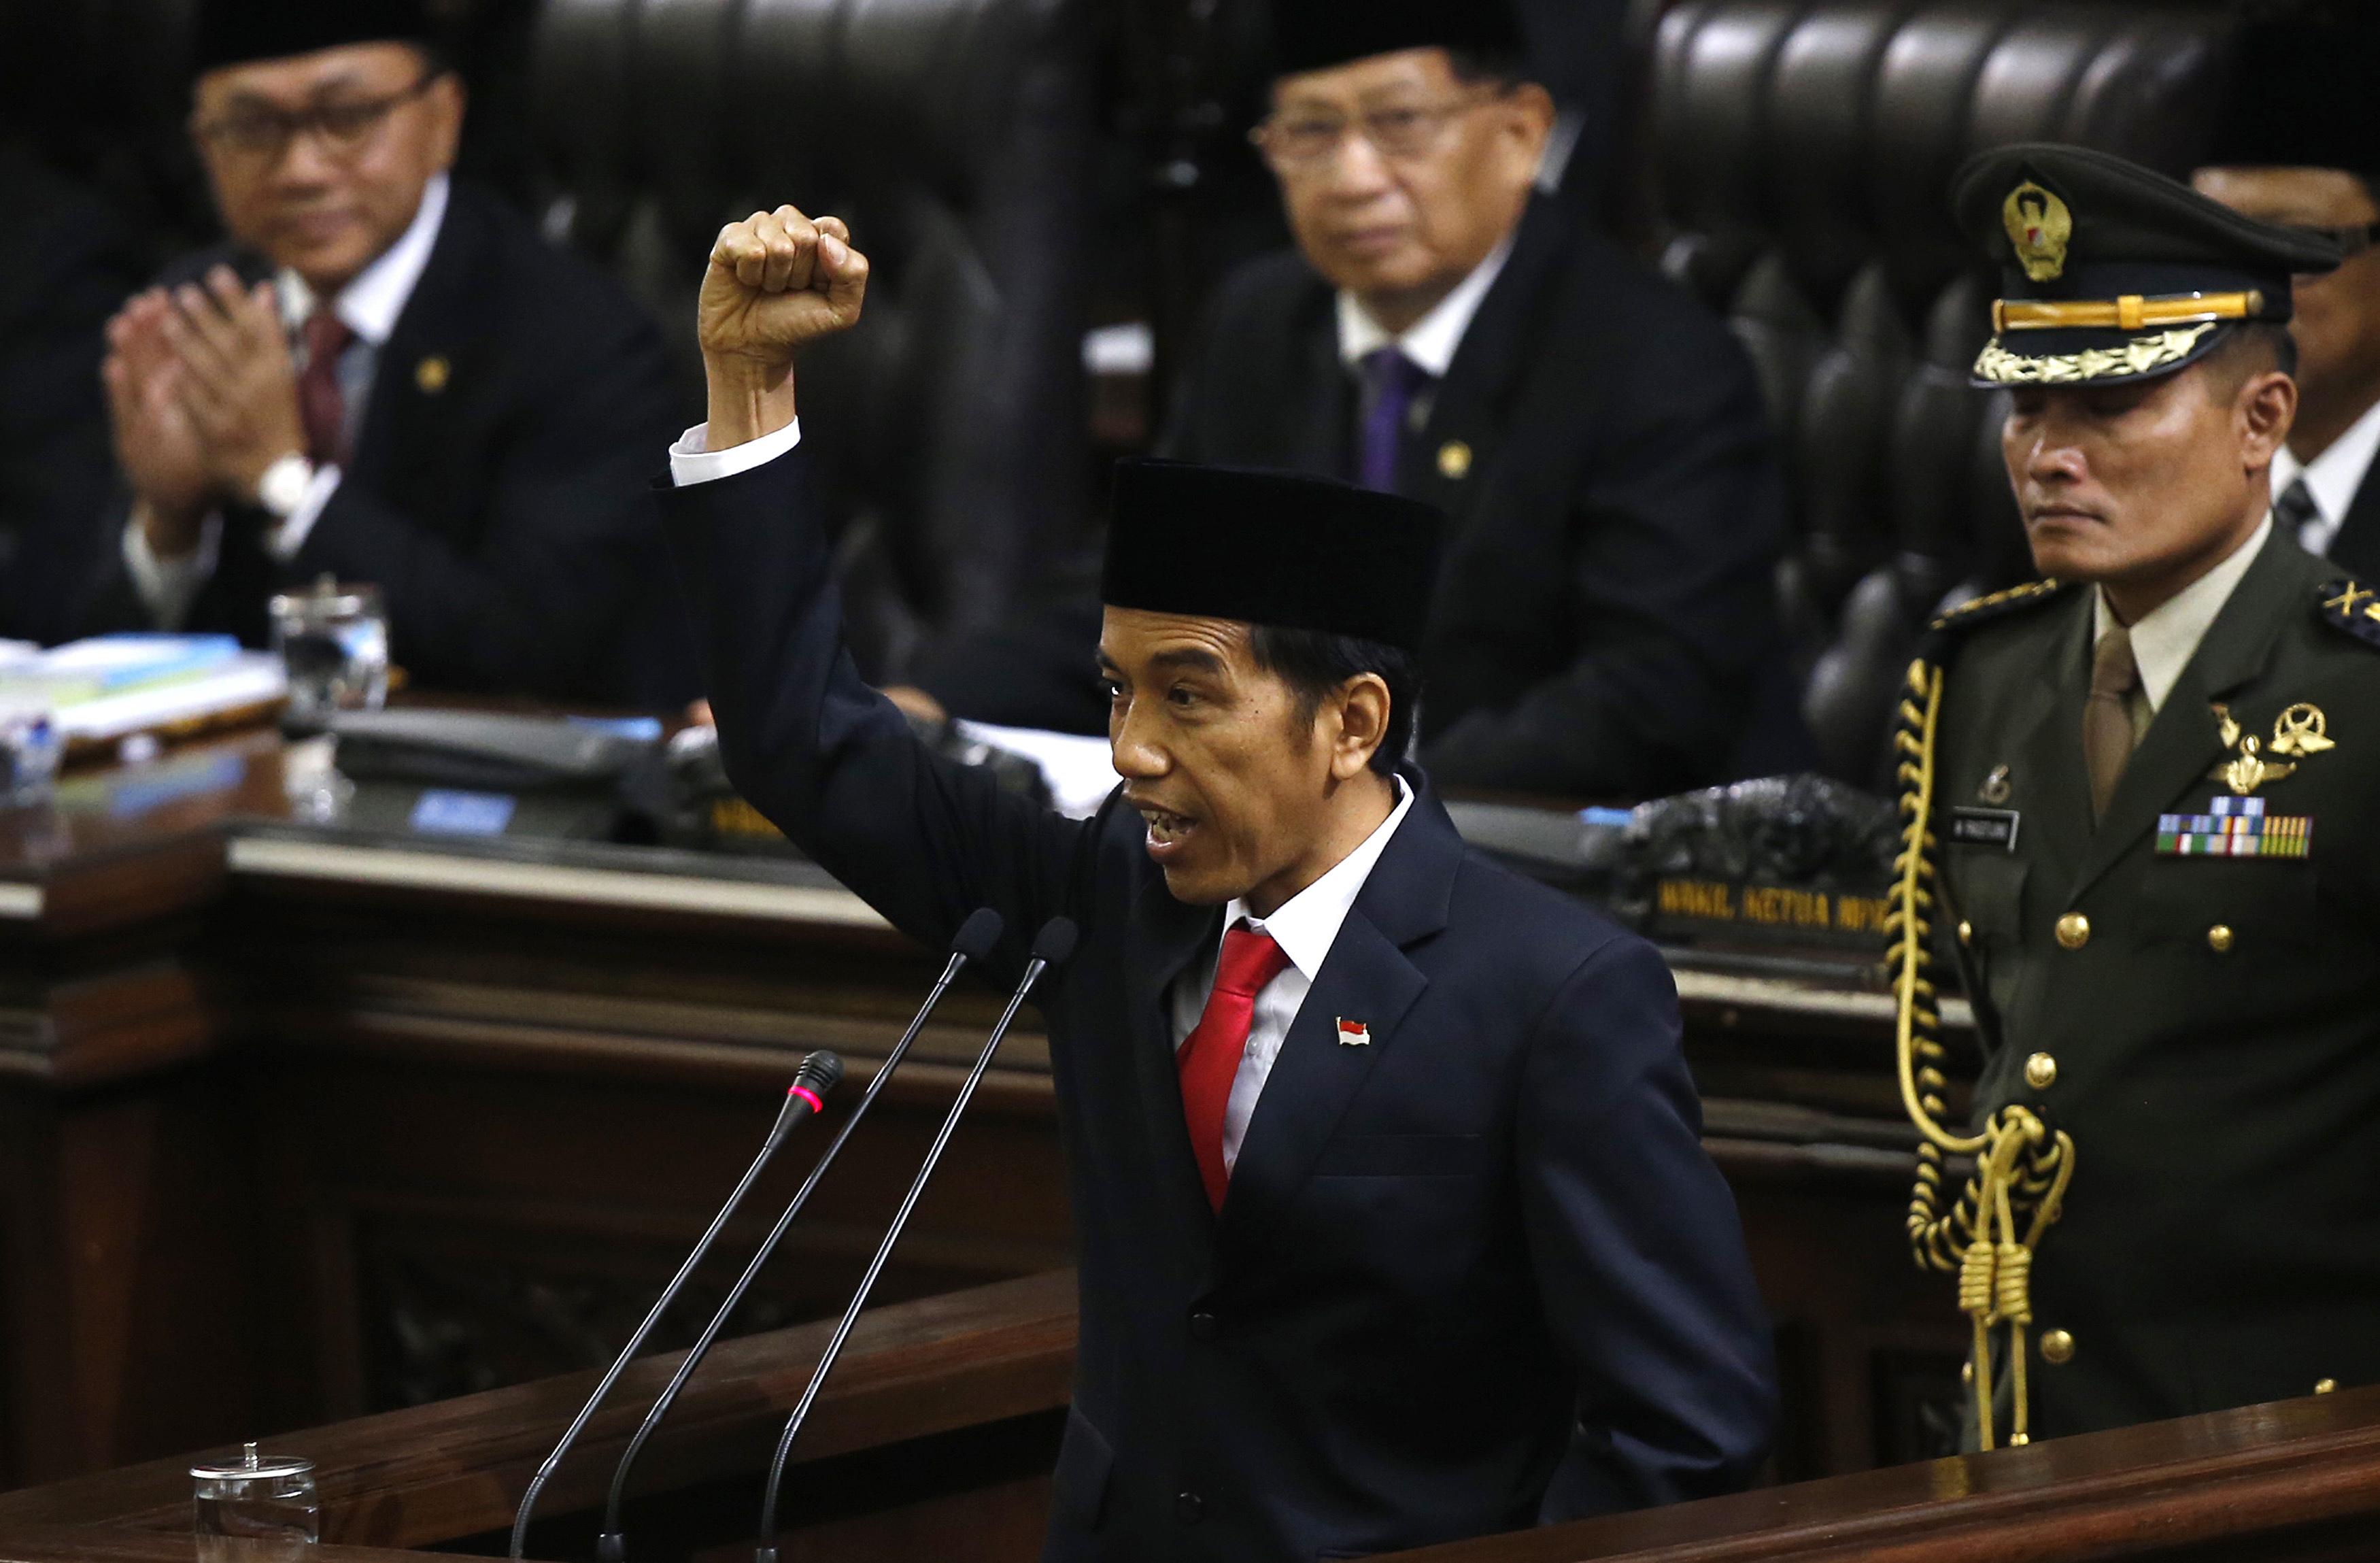 Indonesia's new President Joko Widodo shouts  Merdeka,  meaning freedom, at the end of his speech, during his inauguration at the parliament's building in Jakarta on Oct. 20, 2014